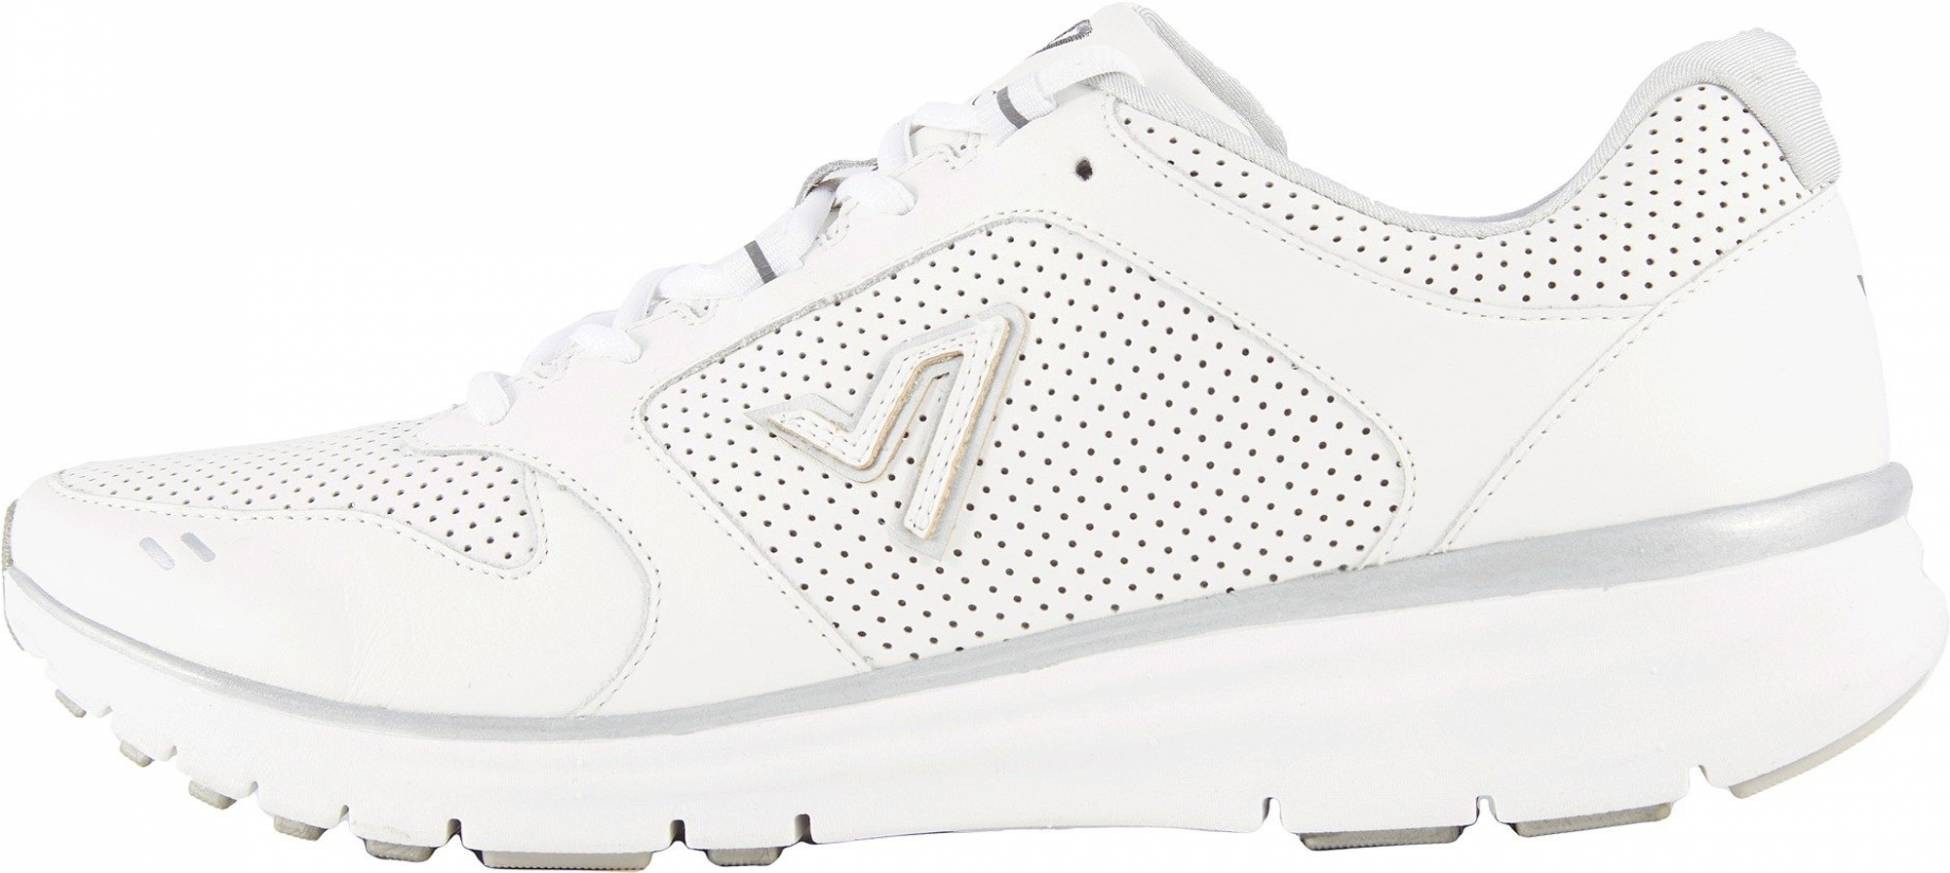 Save 42% on Vionic Walking Shoes (10